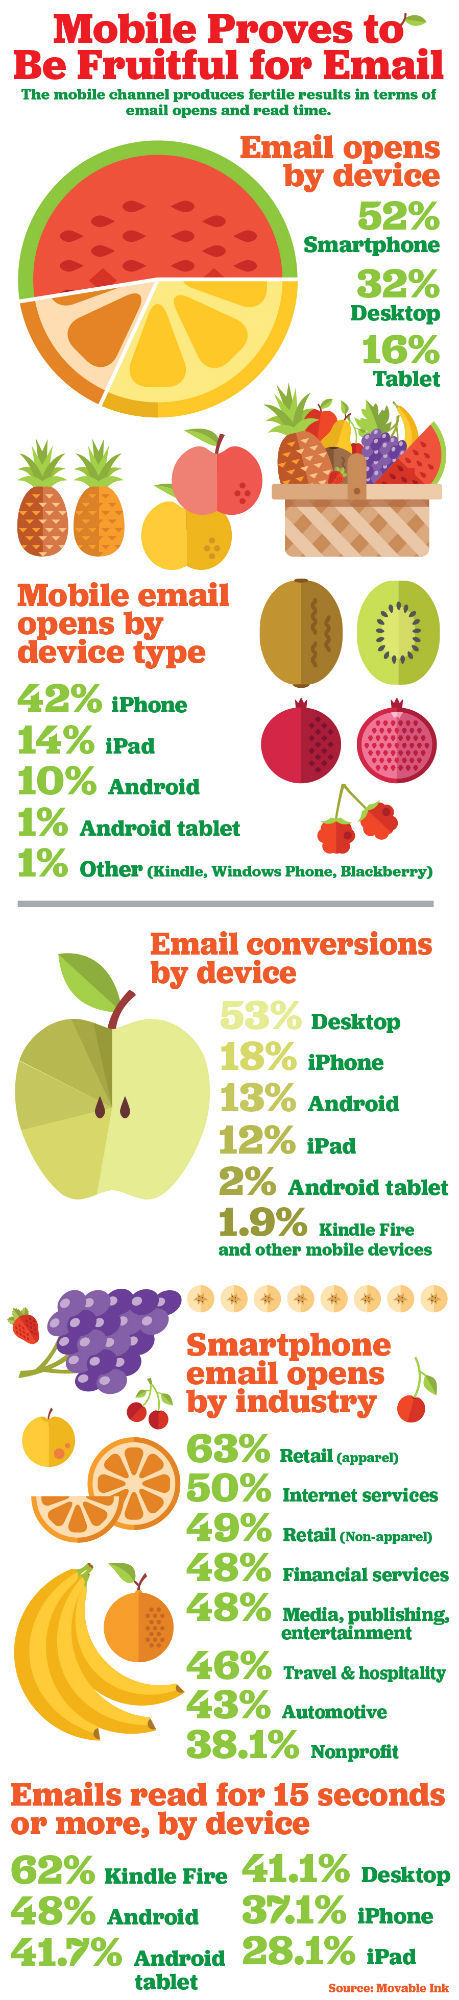 Mobile Proves to Be Fruitful for Email Infographic | Mobile Customer Experience Management | Scoop.it